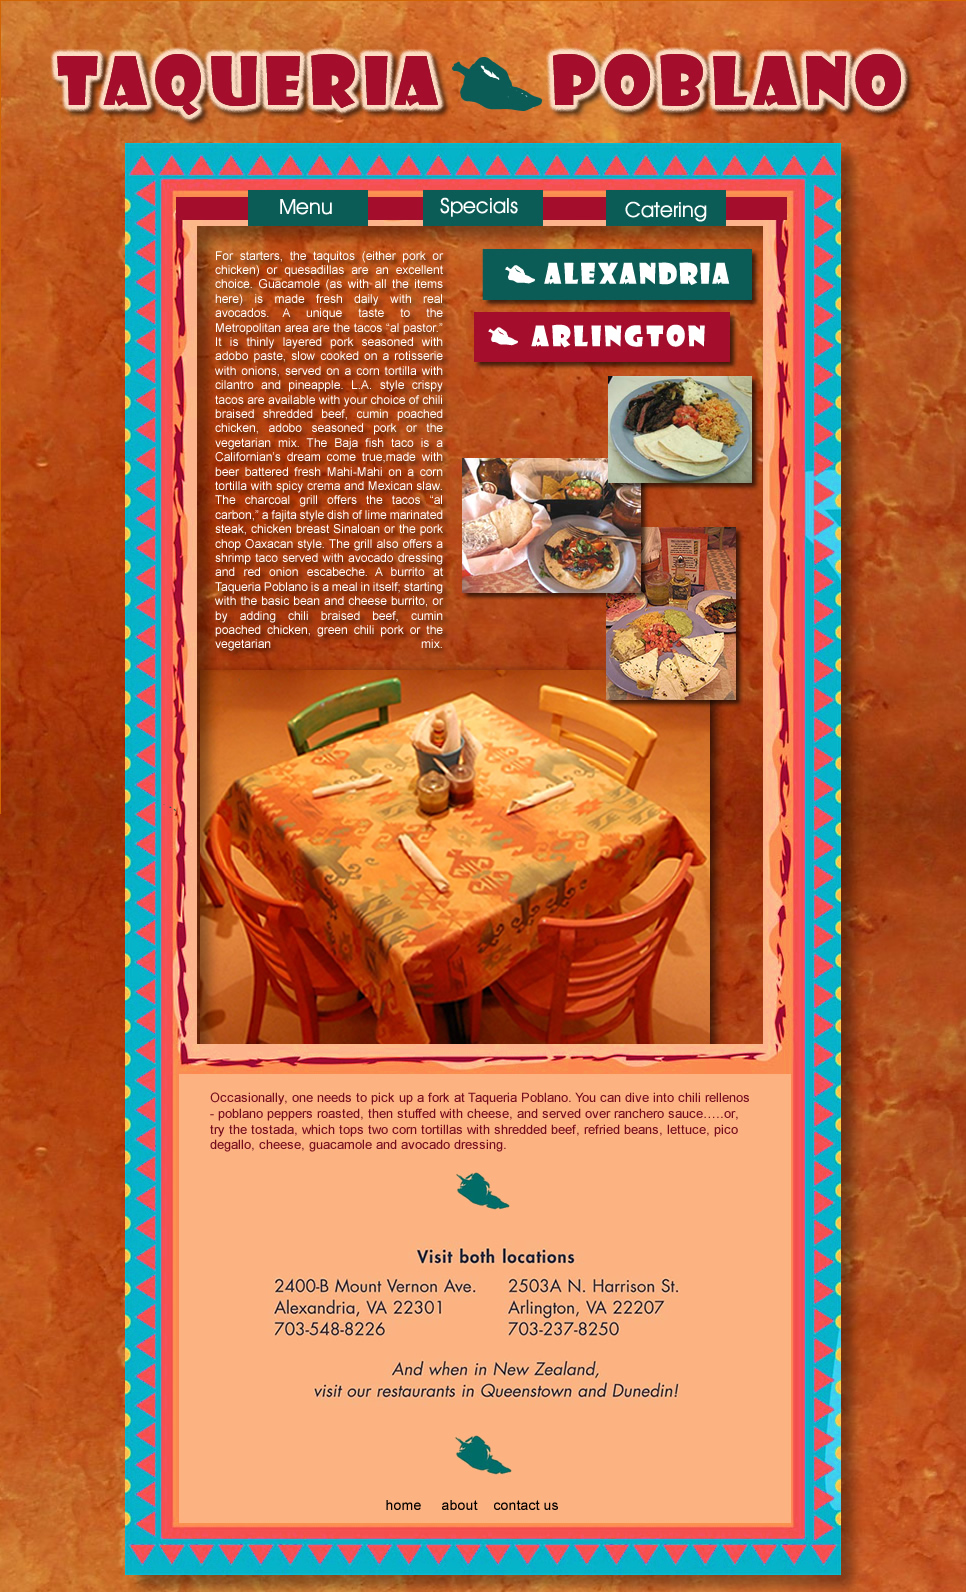 Web Page Design by Rudy - Entry No. 24 in the Web Page Design Contest New Web Page Design for Southwestern restaurant.